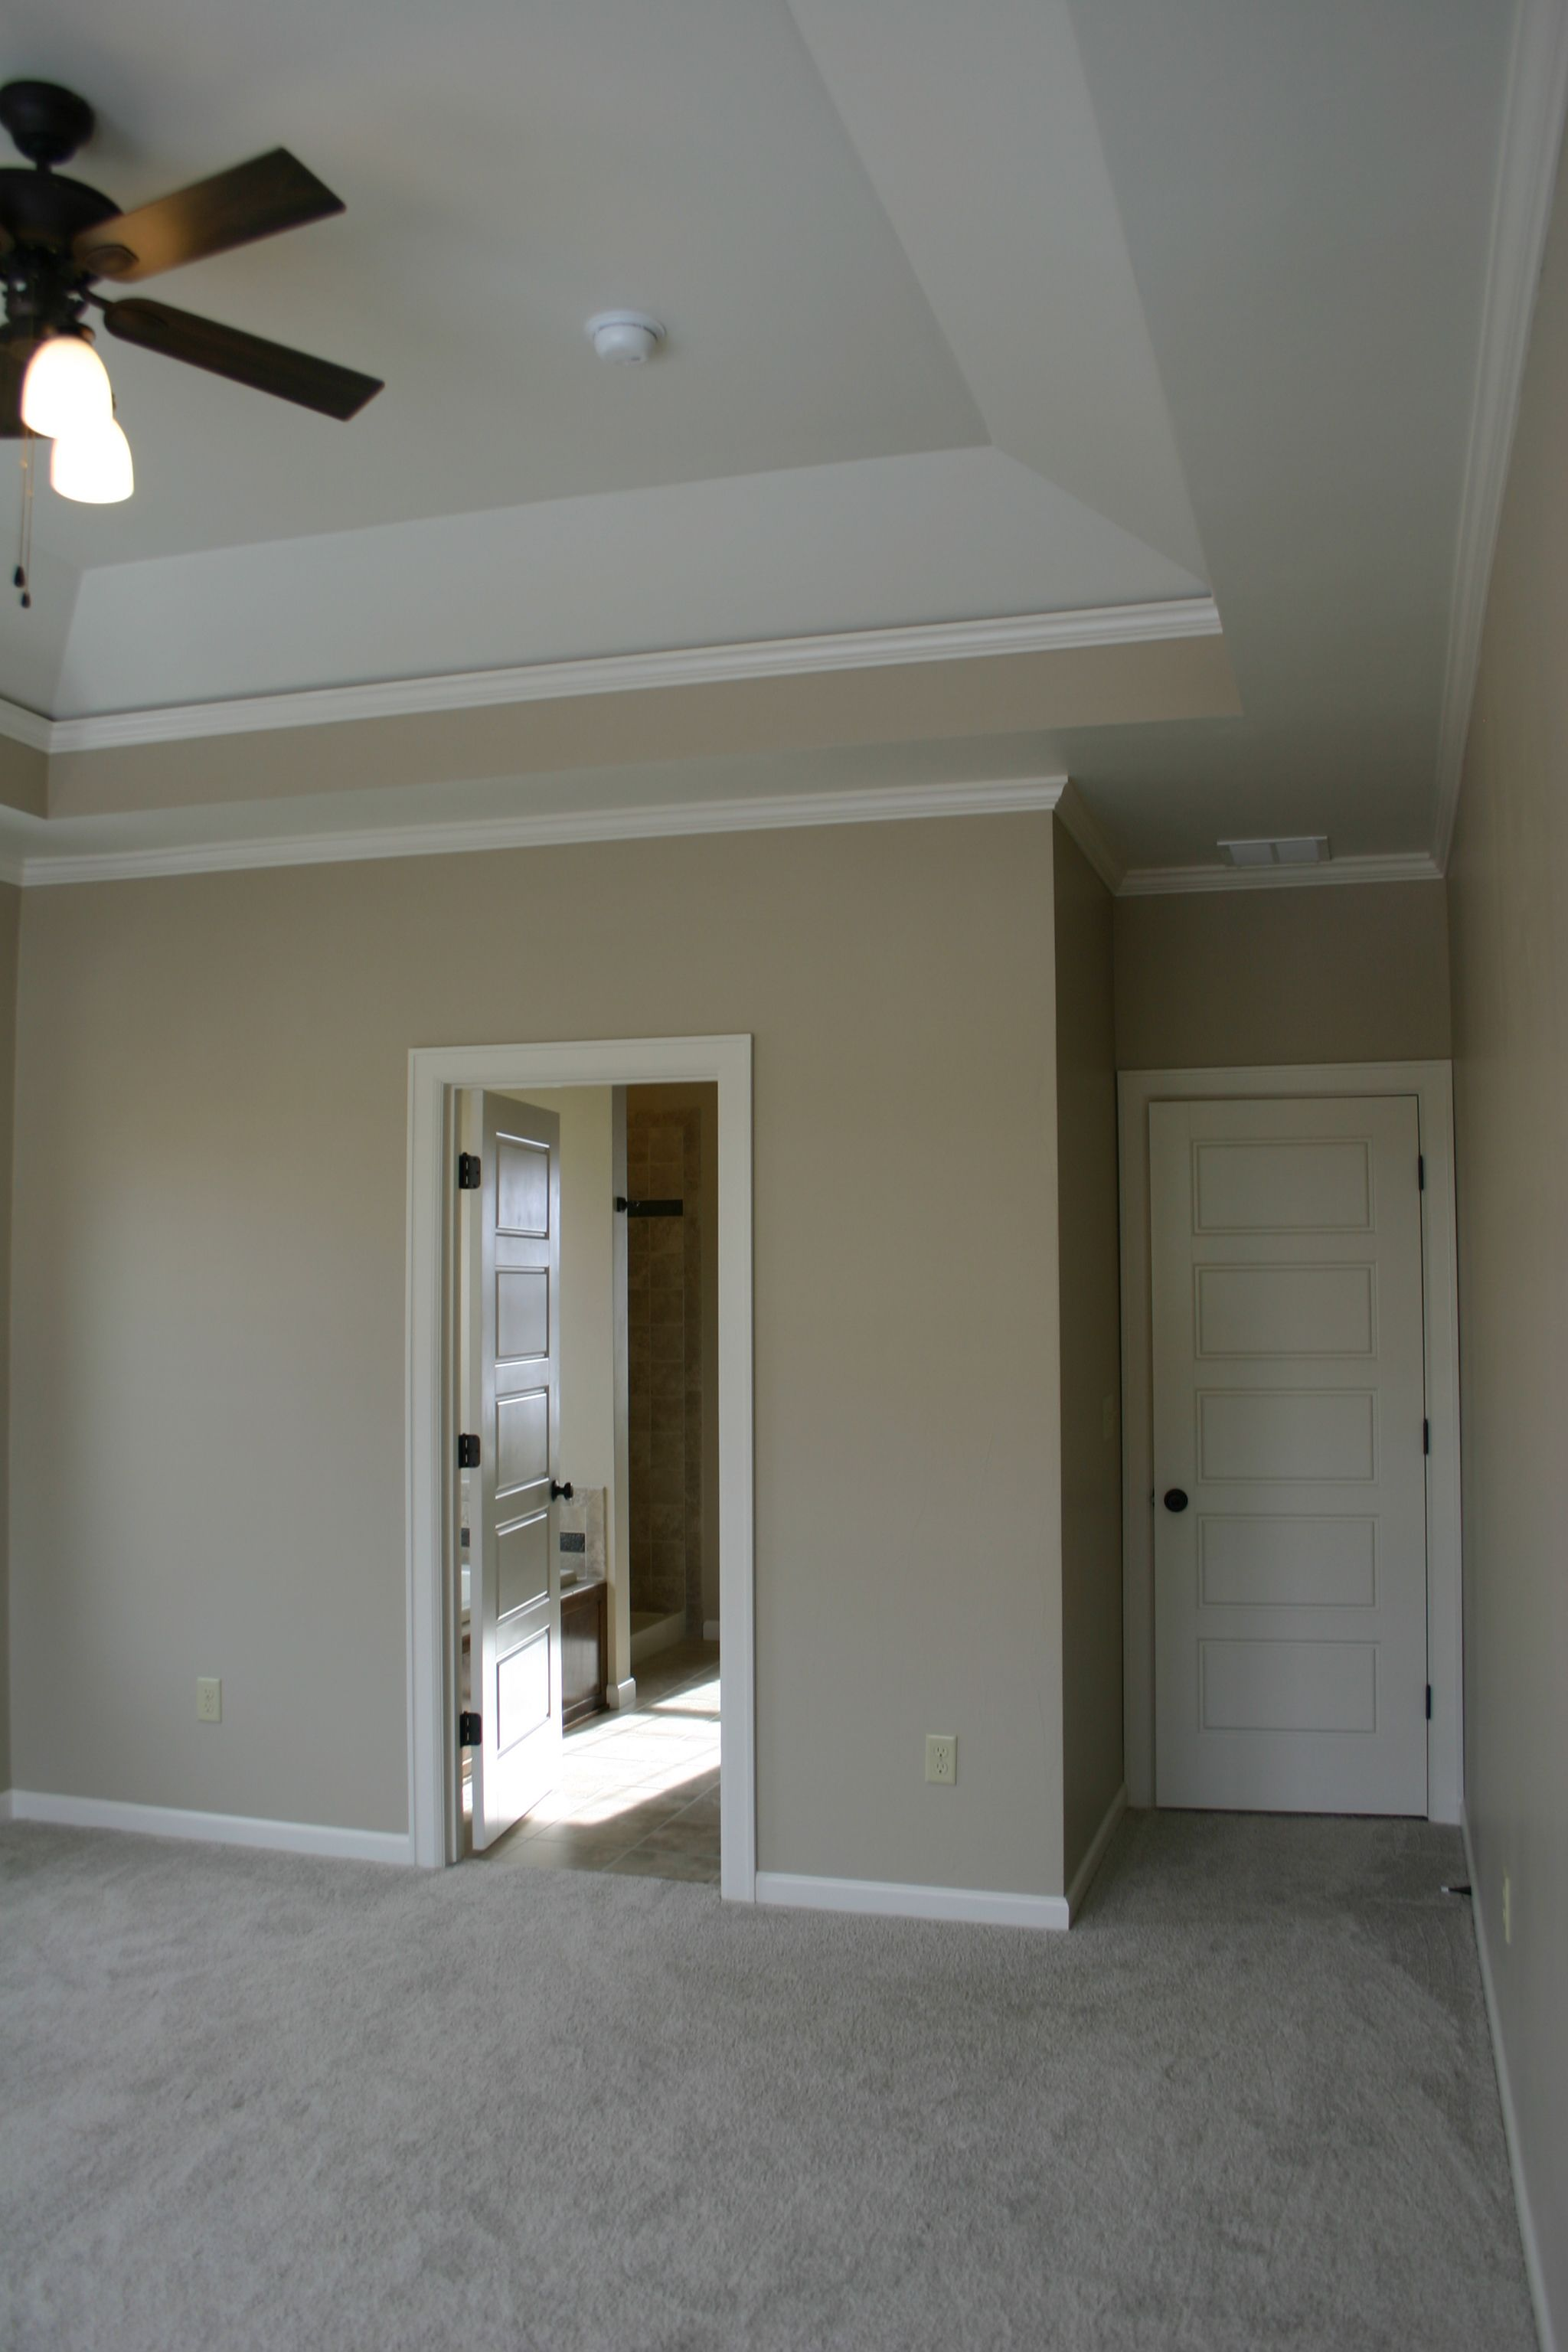 tray ceiling - this could be a good option for the main floor